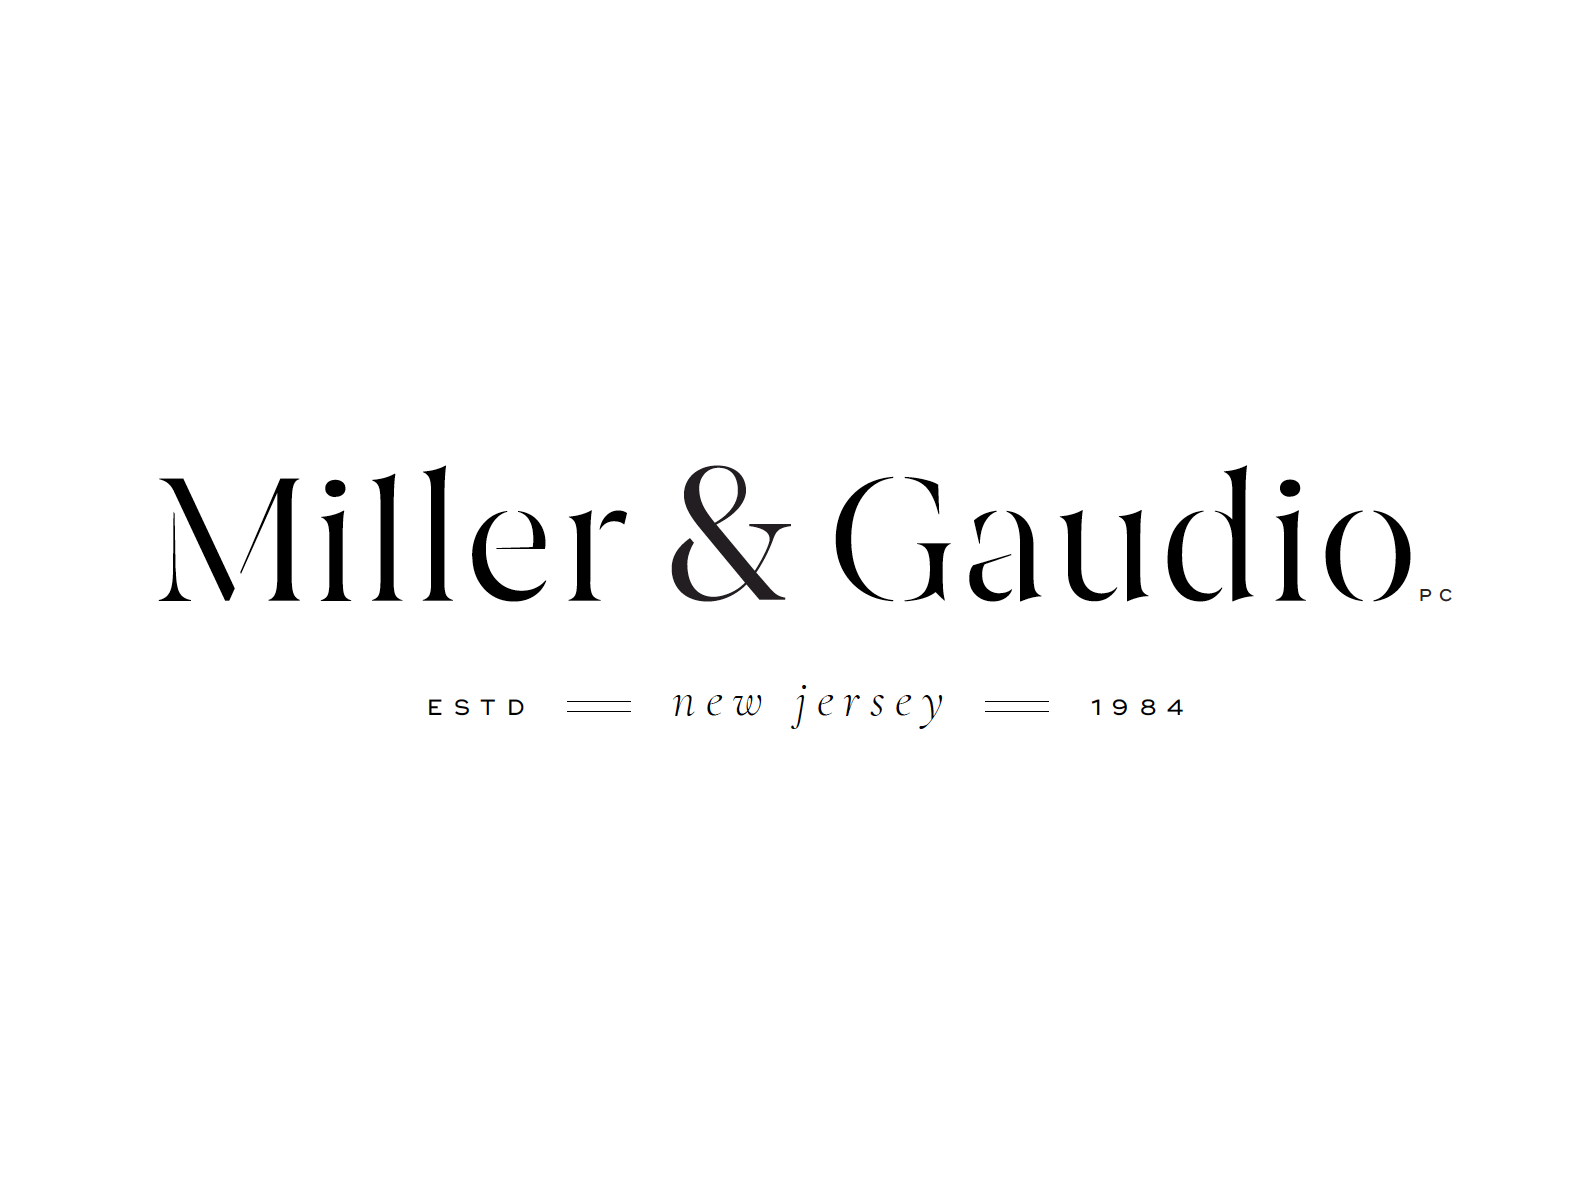 Miller & Gaudio Branding Design black and white simple design new jersey attorney lawfirm law identity brand simple clean high-end modern minimal branding logo design concept